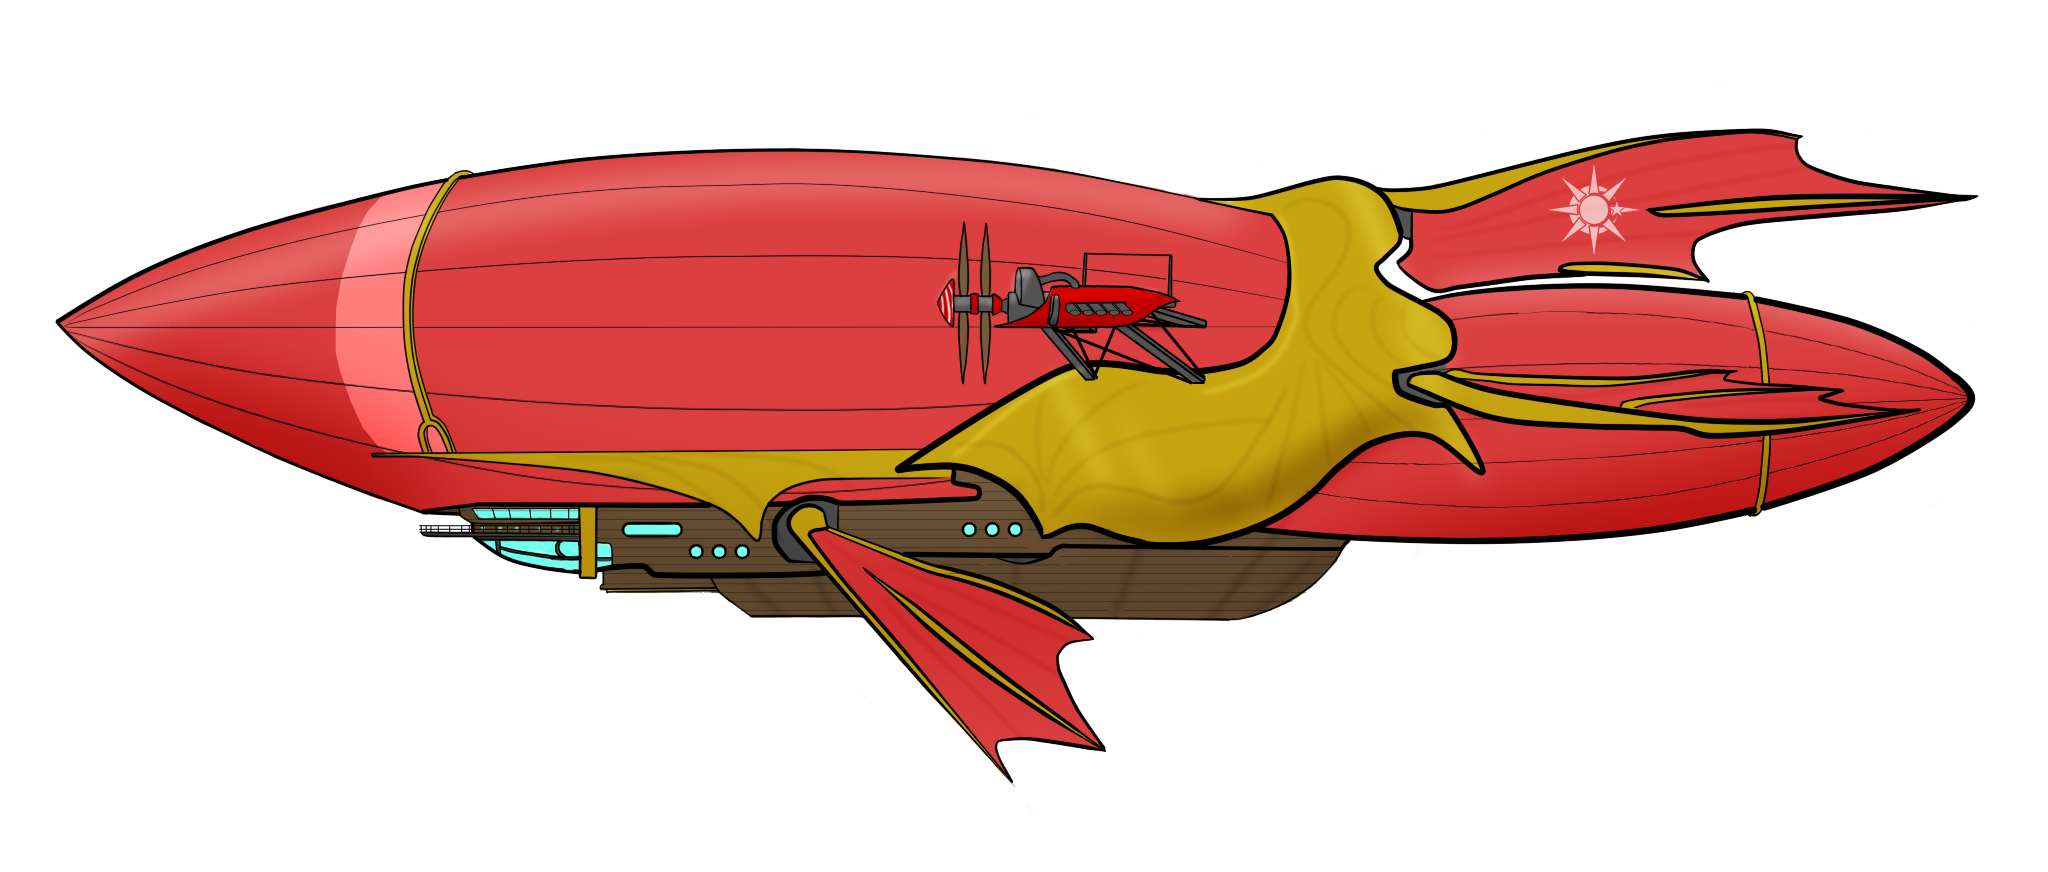 The wizard and lonely. Airship drawing anime banner freeuse download